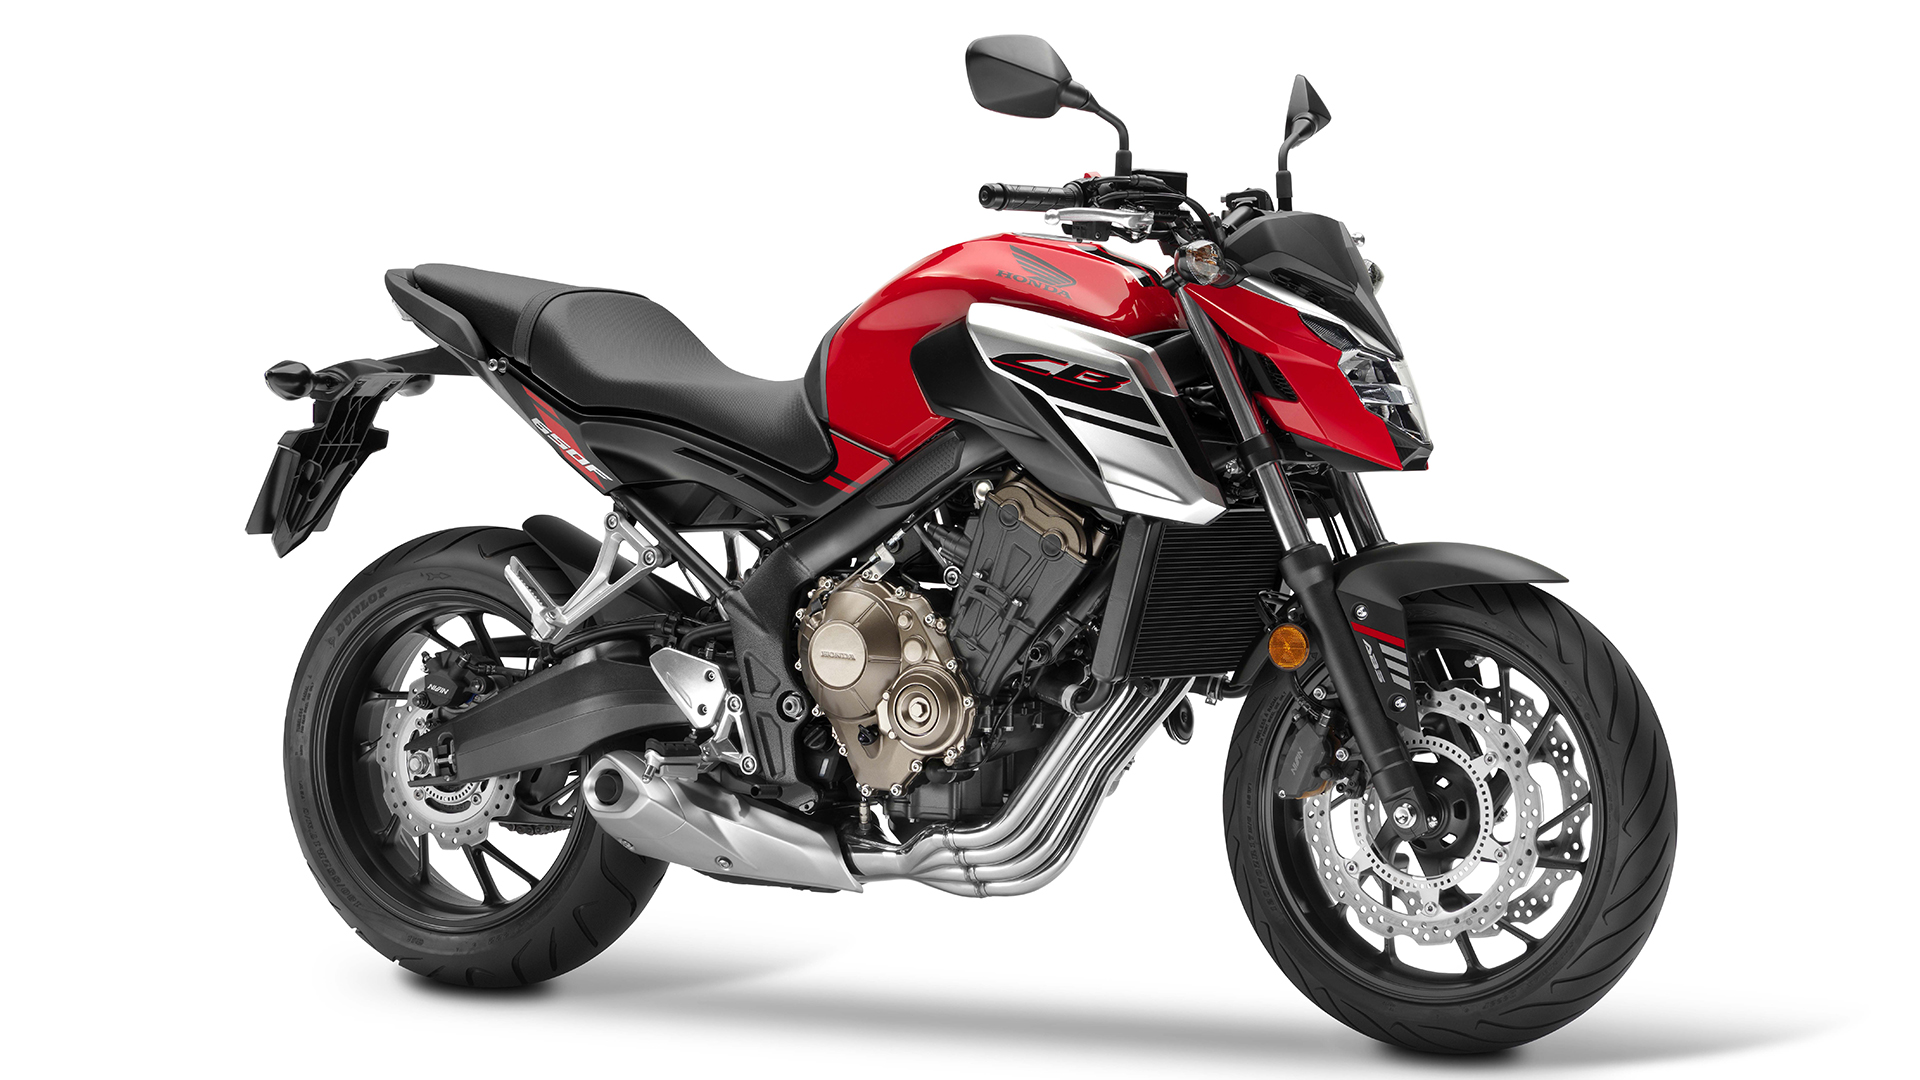 We Are Here To Service And Repair Your Honda Vehicle Or Honda Power  Equipment Unit As Specified By The Factory.